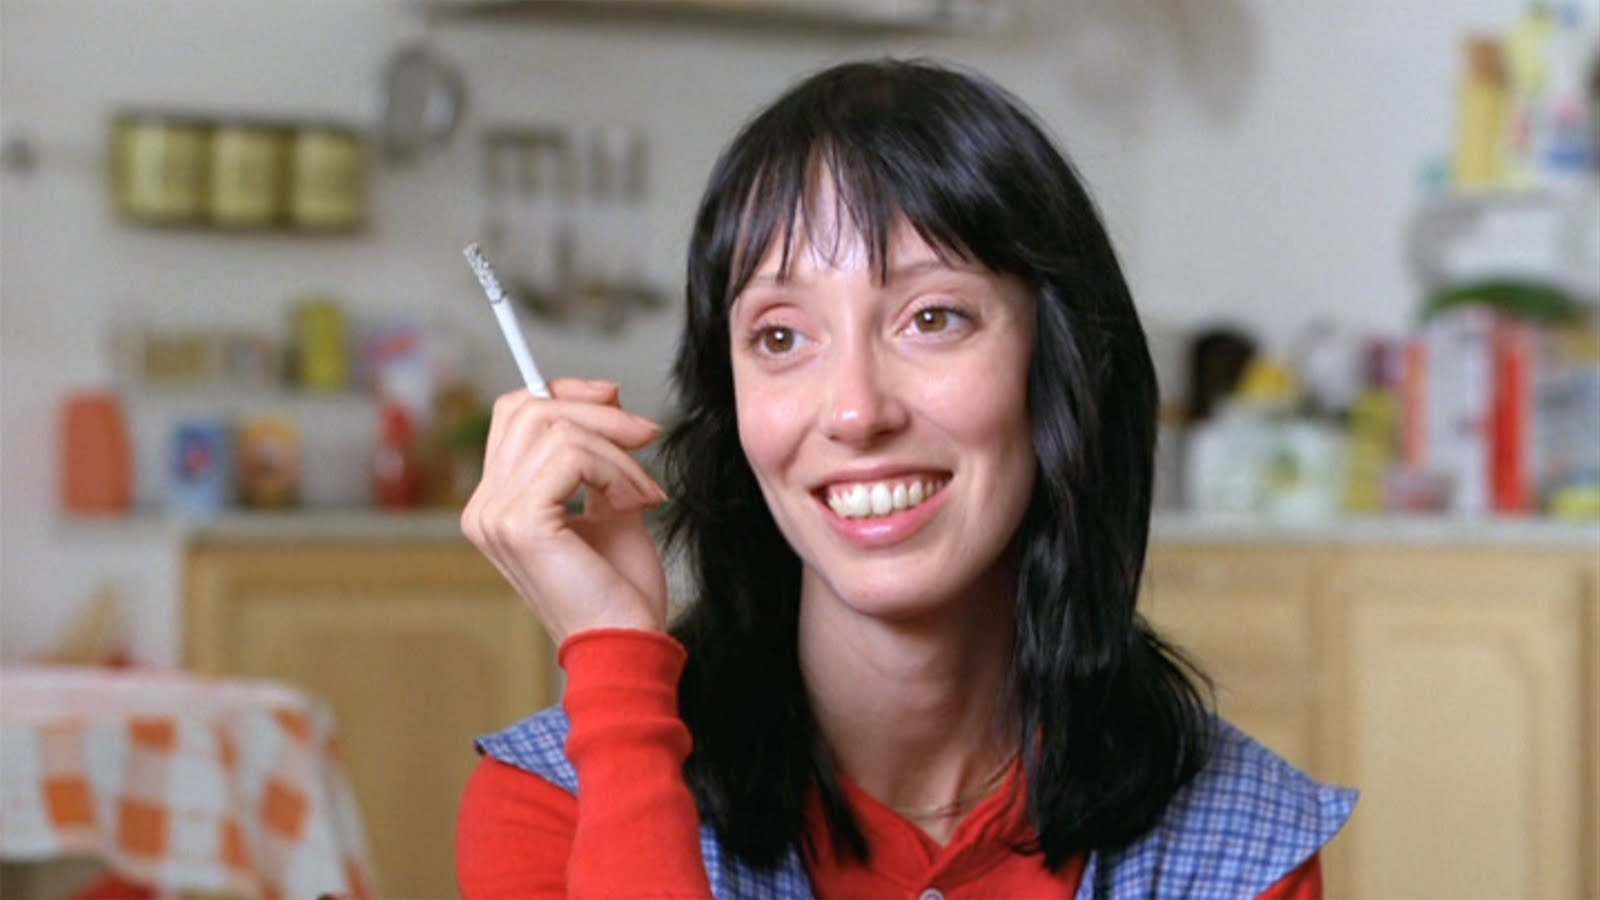 Classify Shelley Duvall